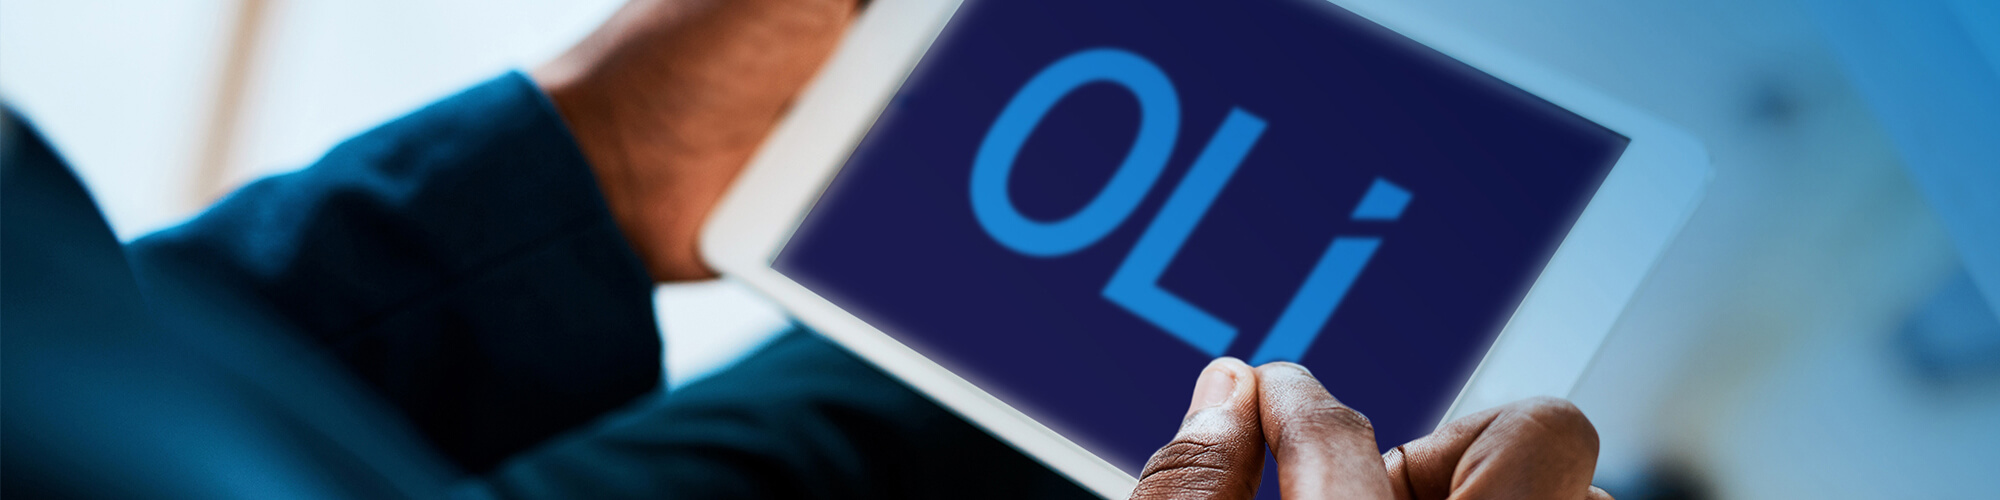 person holding tablet with word OLI on screen